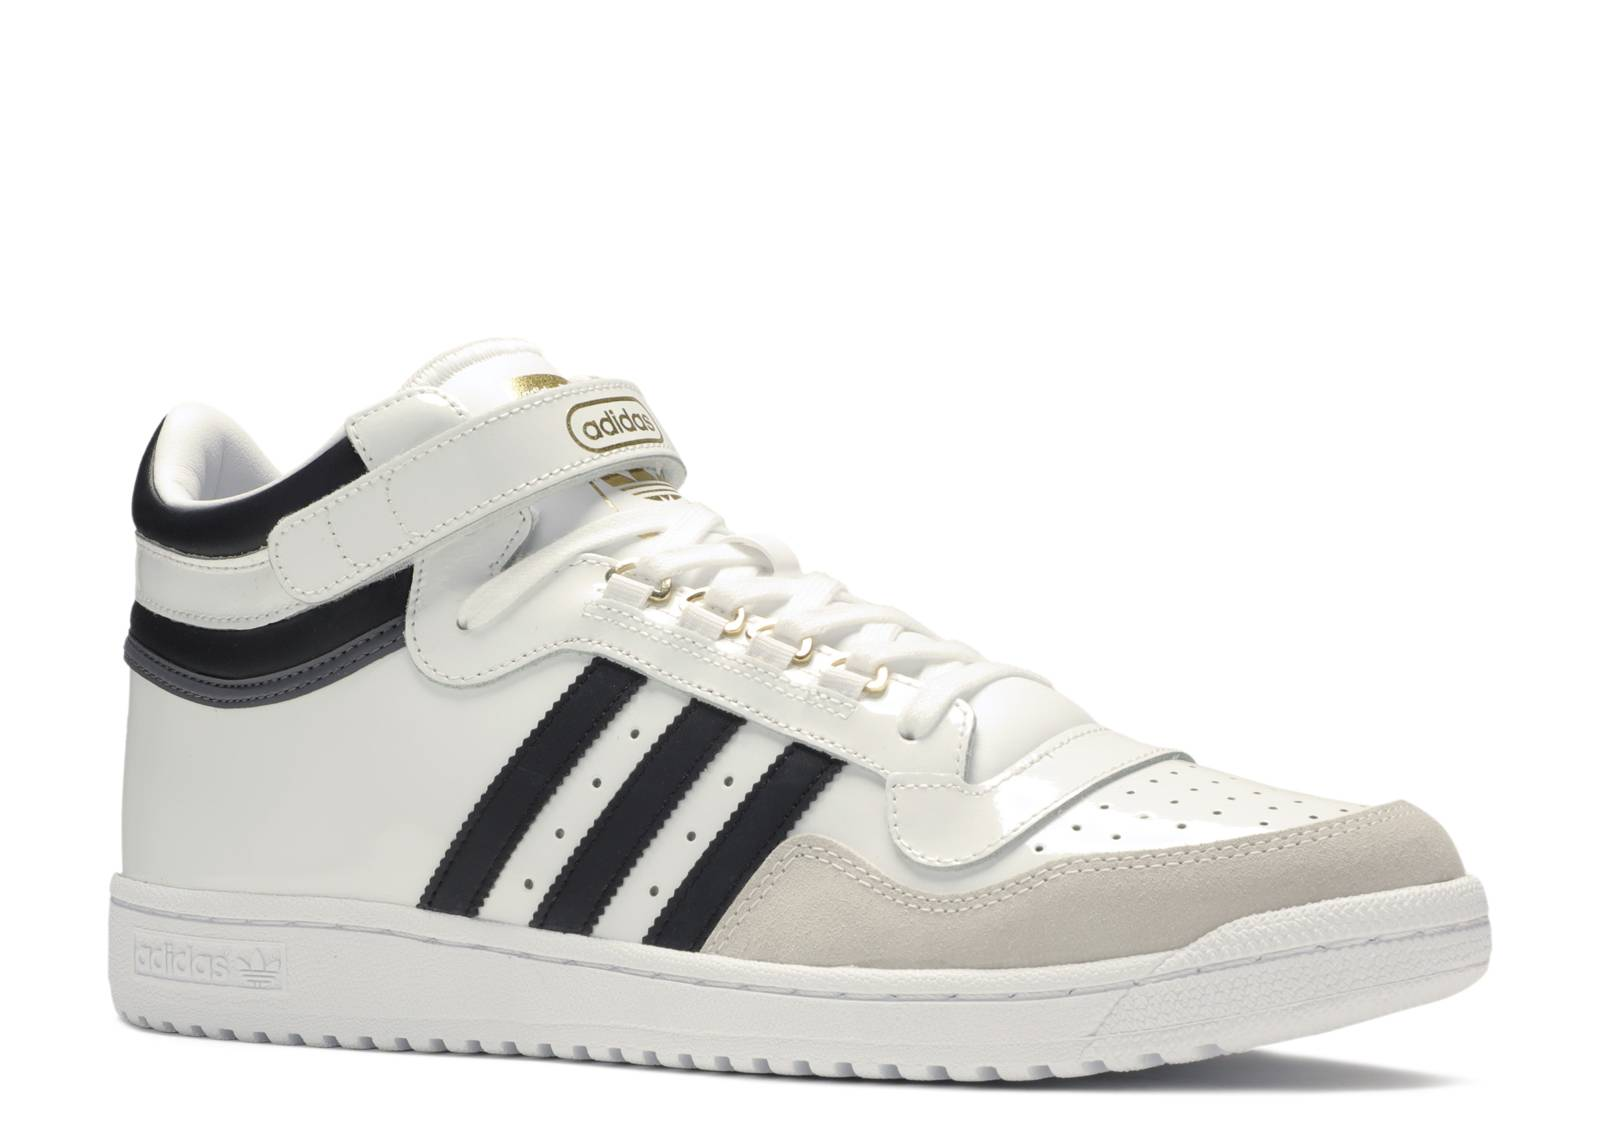 Concord 2 Mid 'White Patent' Adidas BB8778 footwear